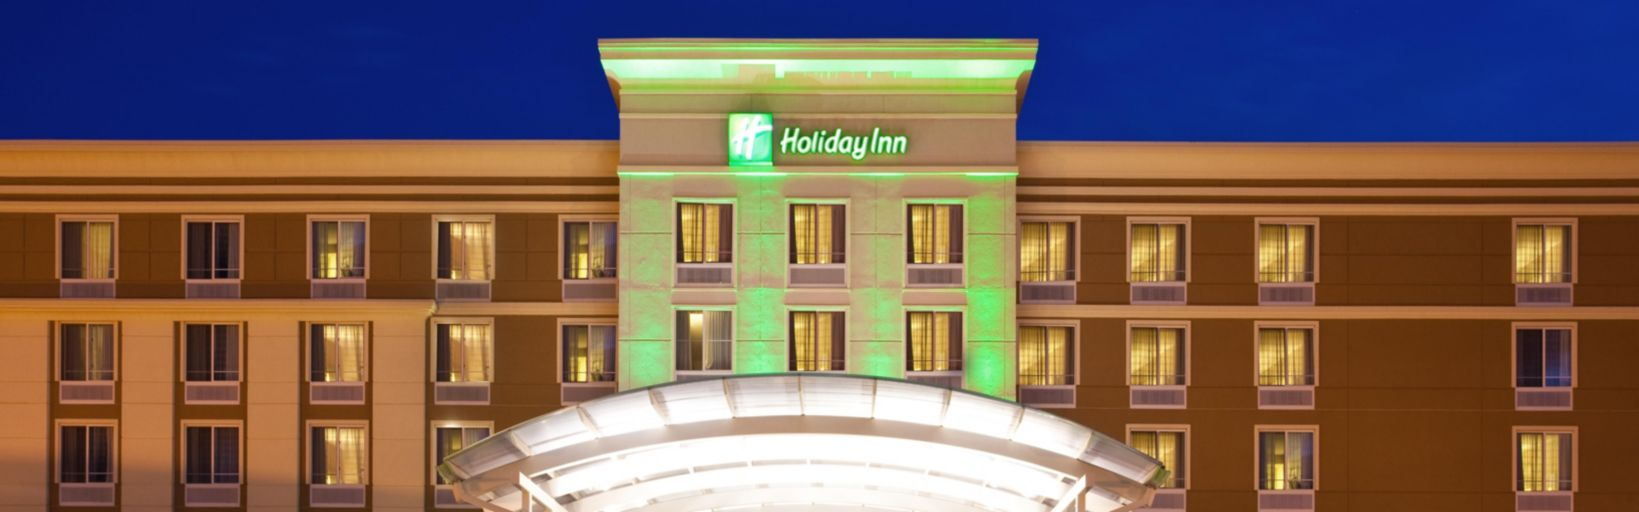 Holiday Inn Chicago - Midway Airport Hotel by IHG